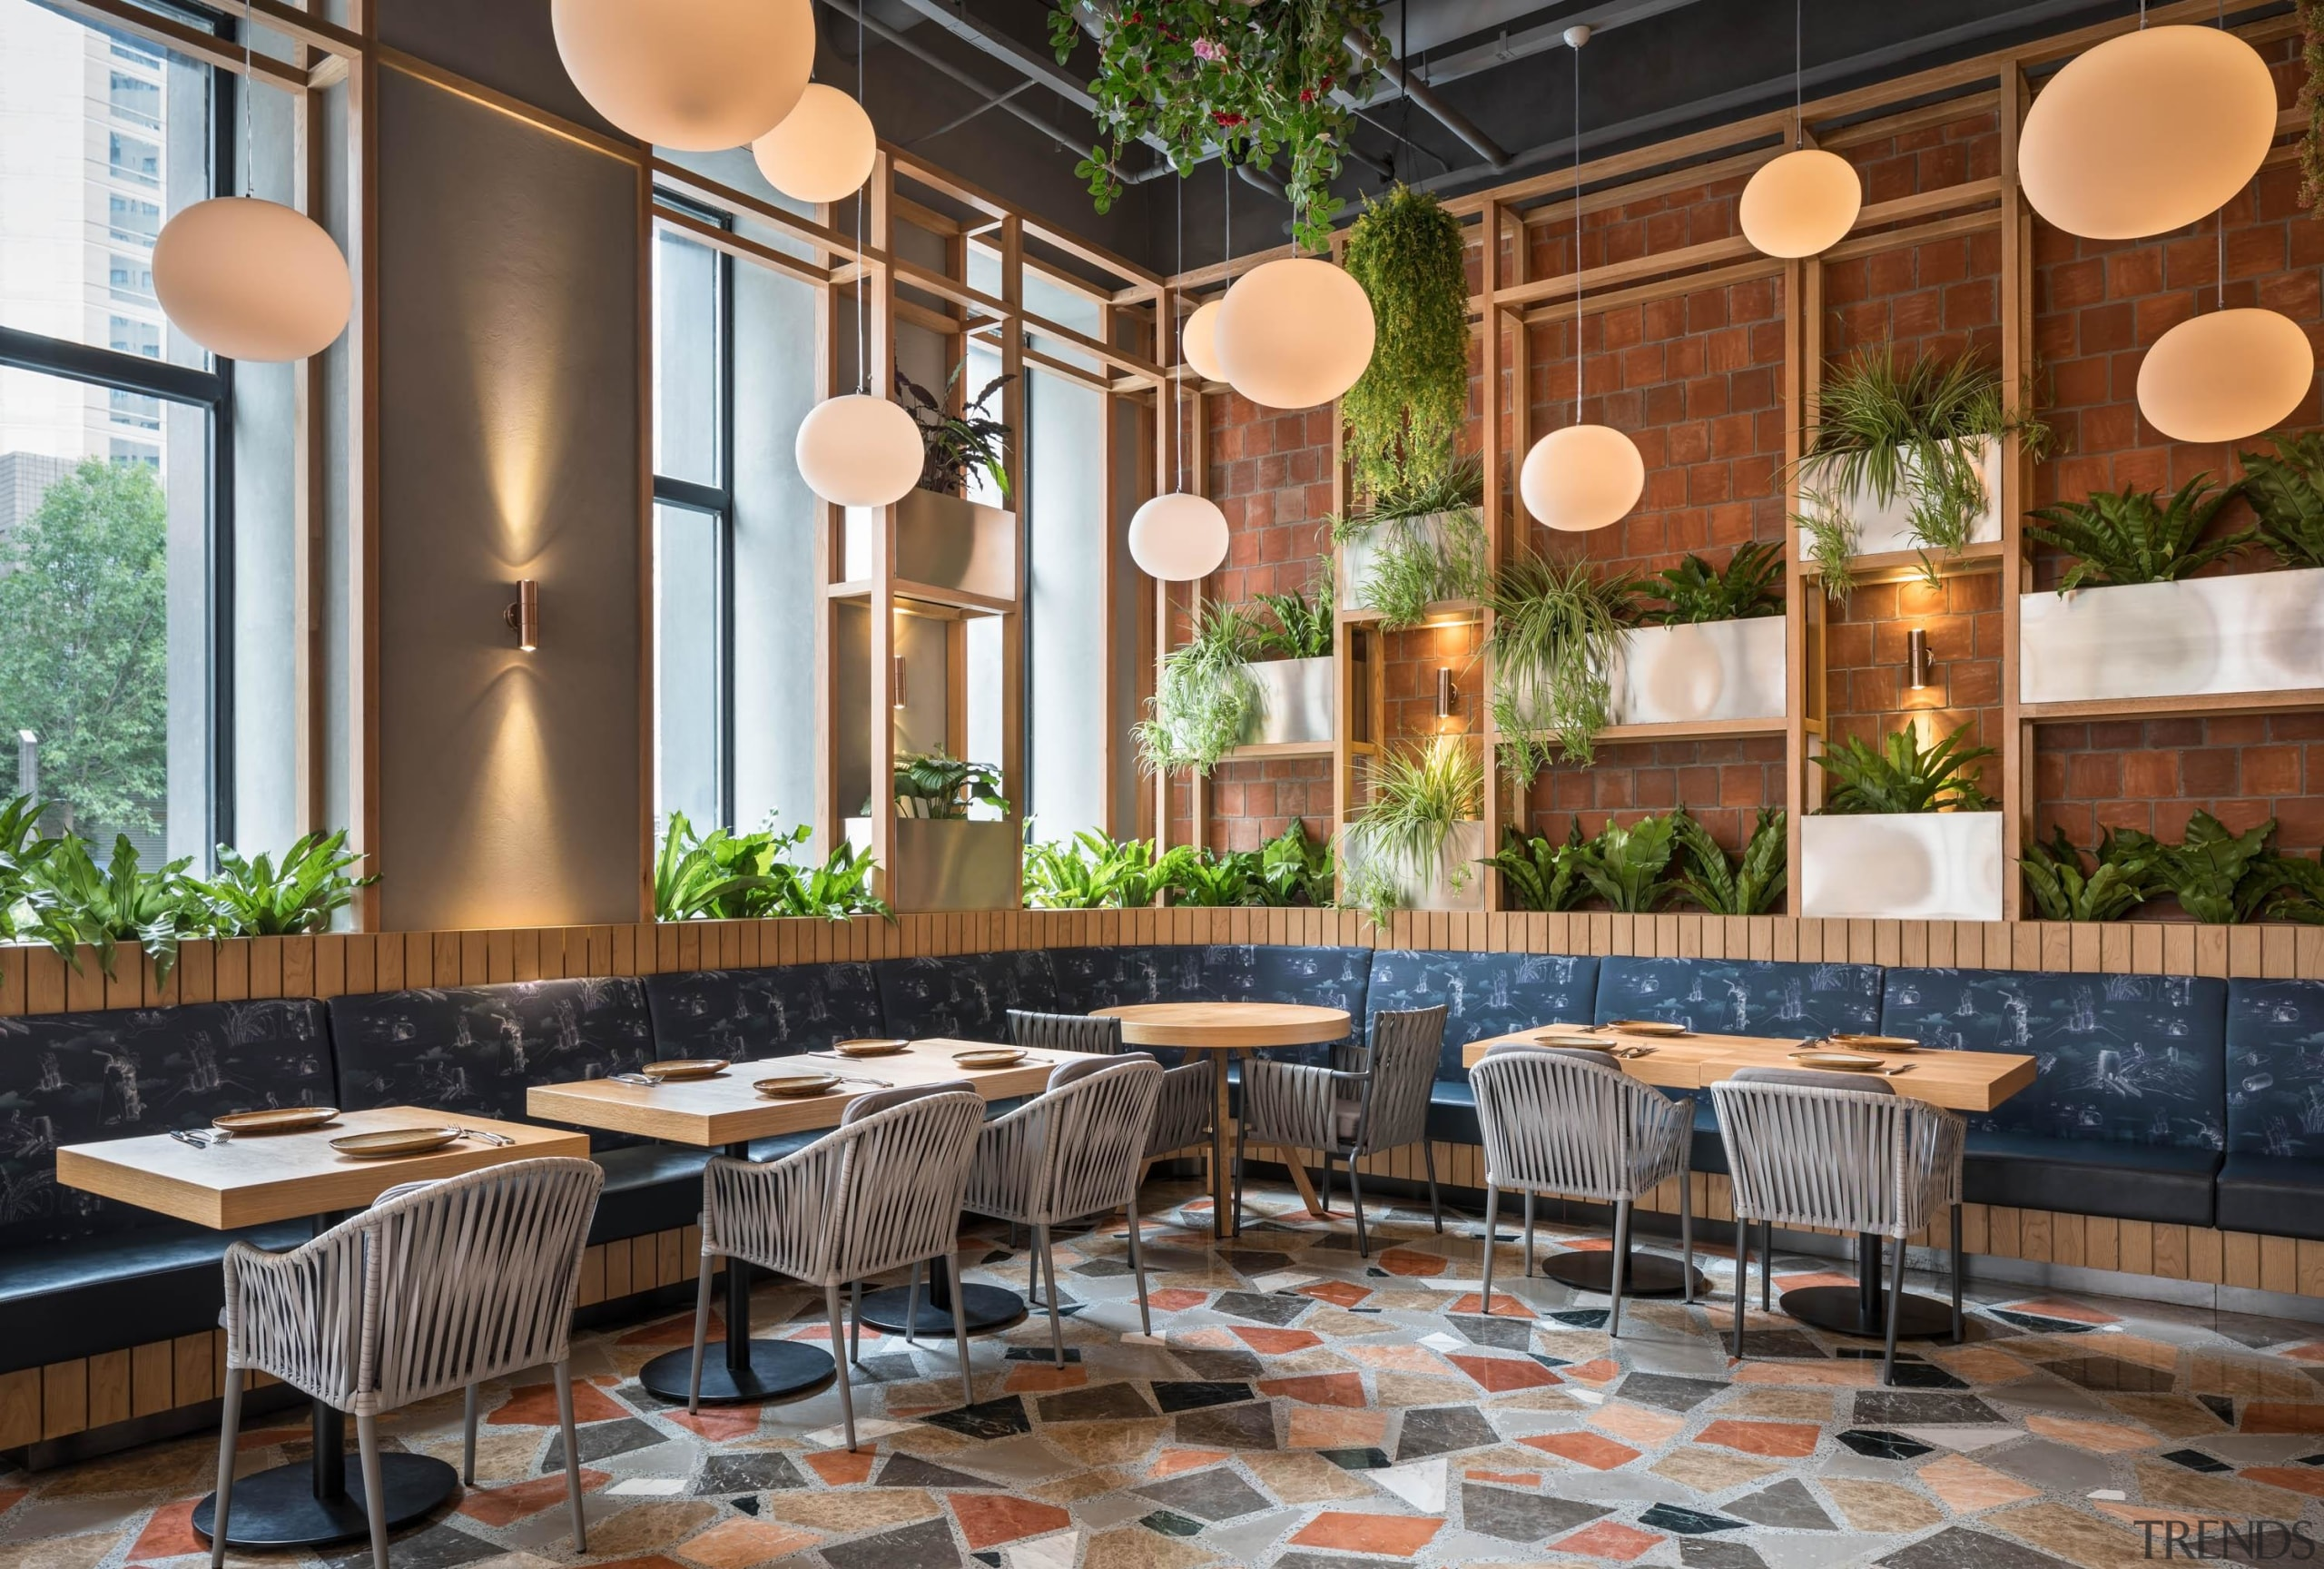 The designers carefully selected different elements such as architecture, brunch, building, café, cafeteria, coffeehouse, furniture, home, house, interior design, lobby, property, real estate, restaurant, room, table, brown